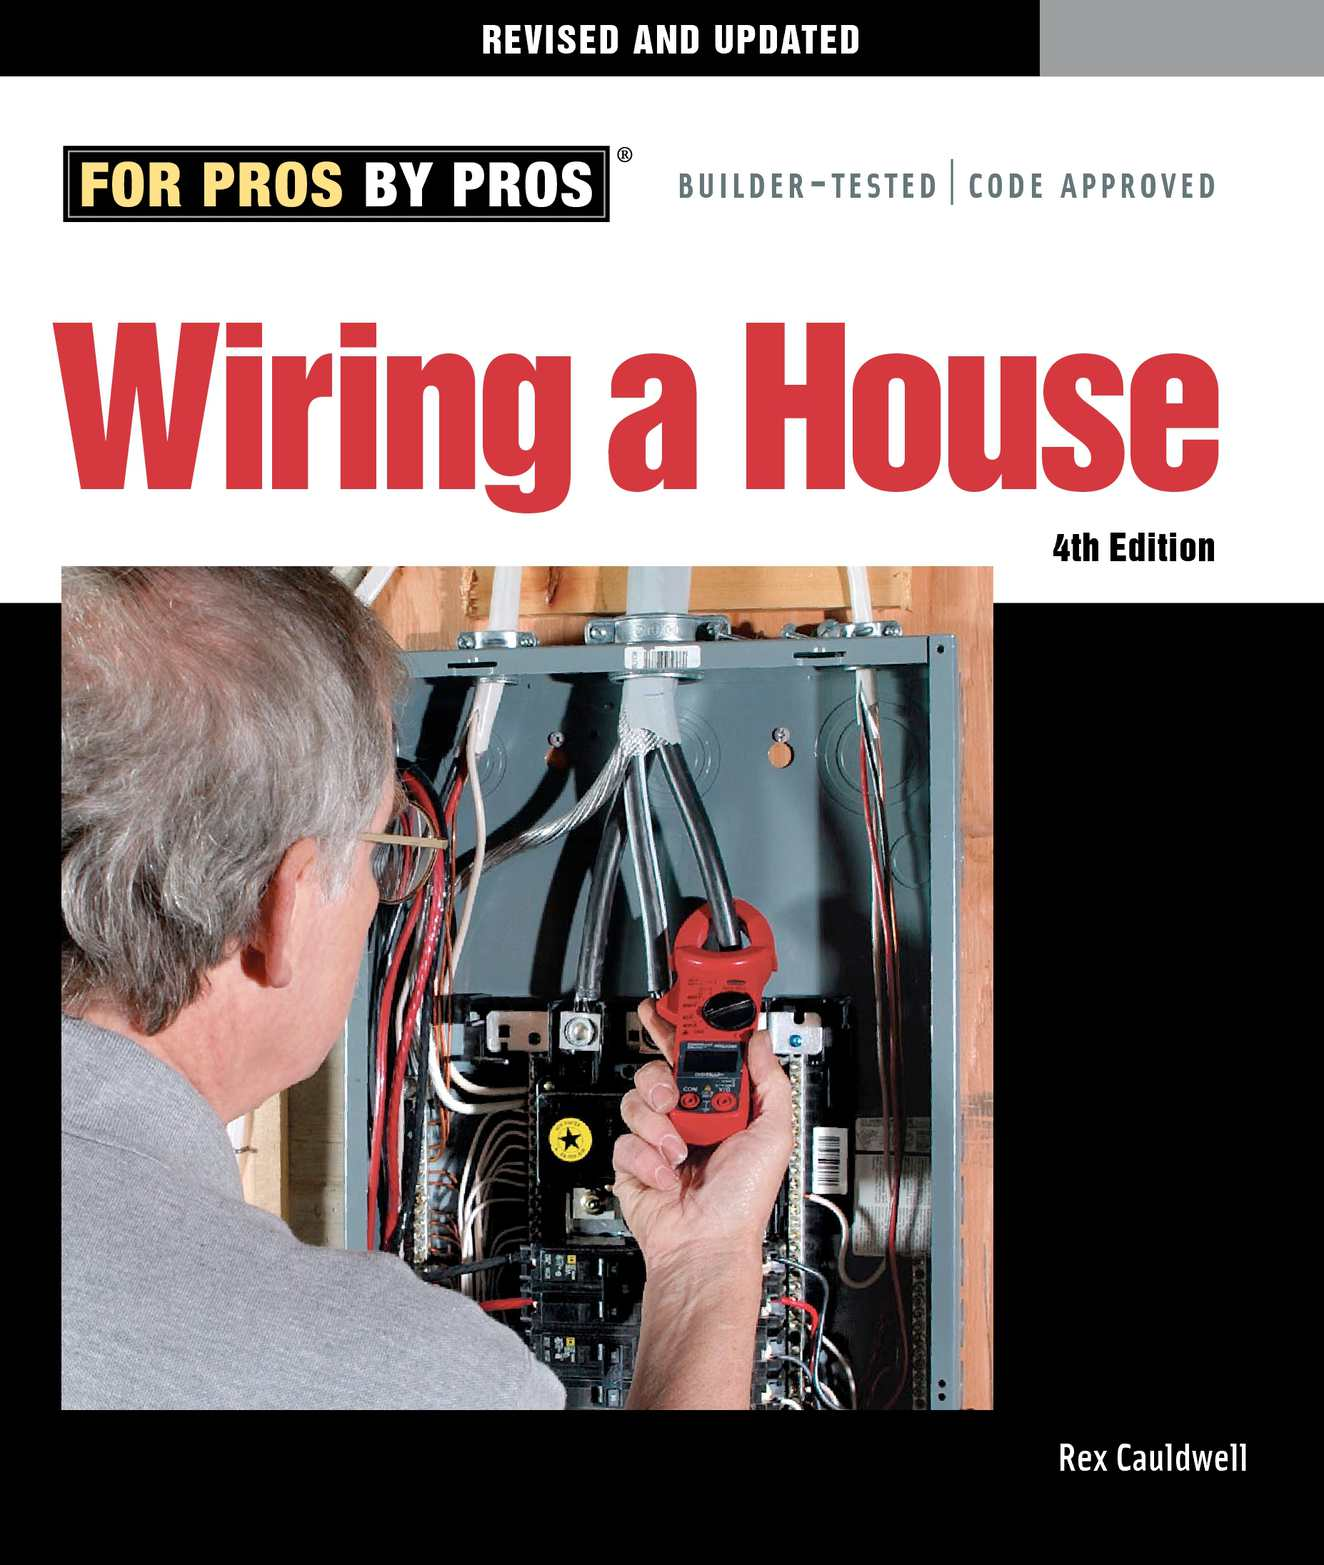 hight resolution of wiring a house 4th edition preview